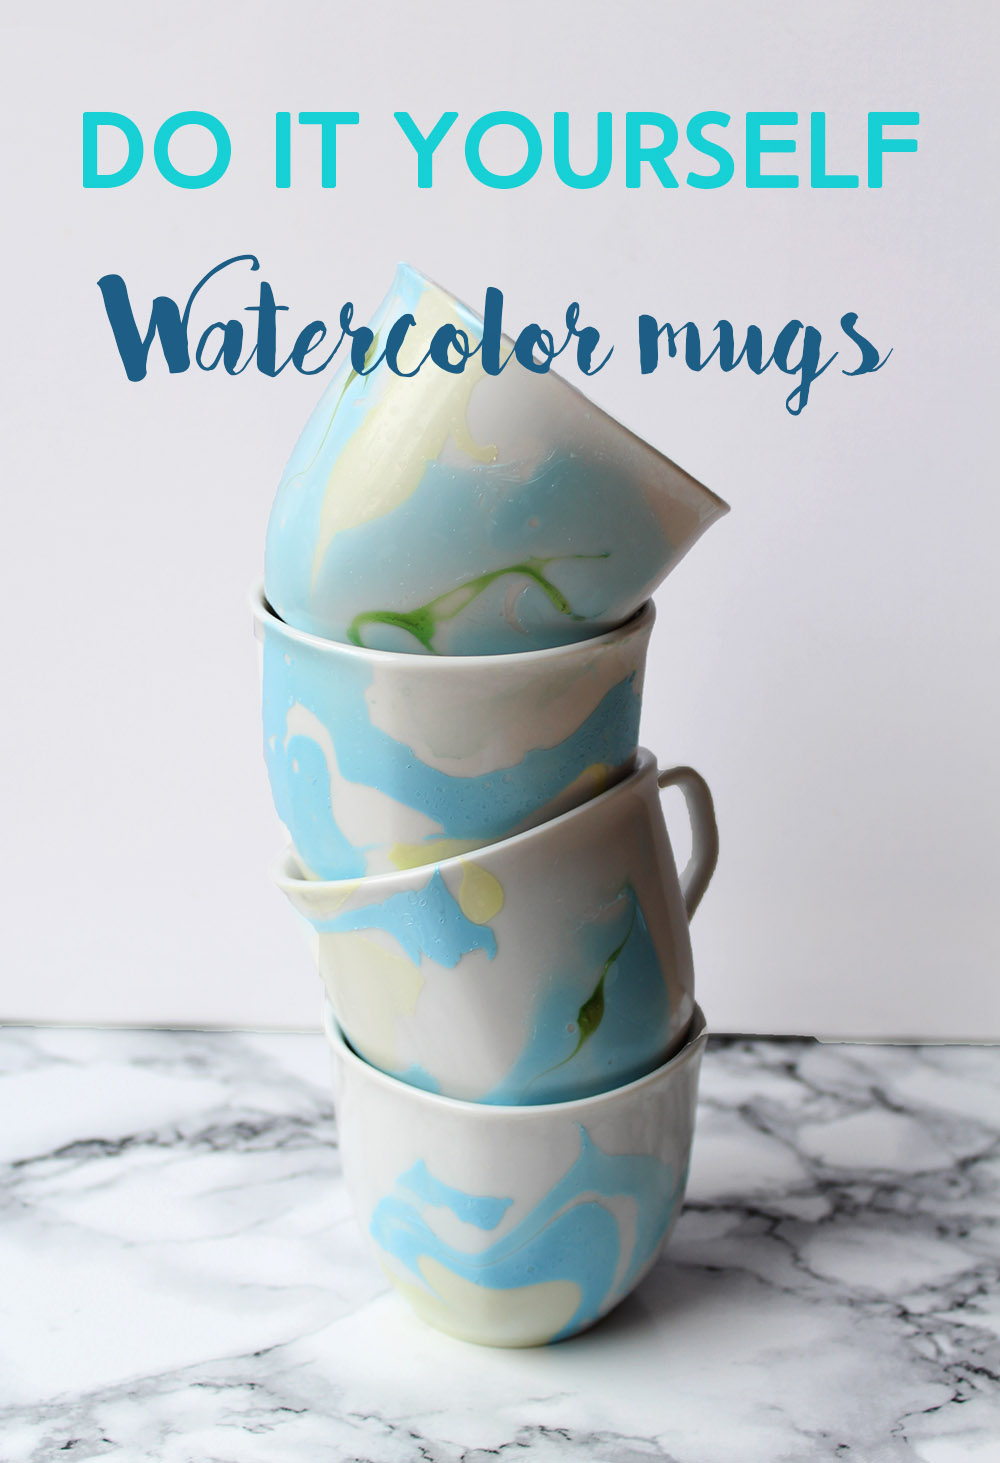 letters&beads-diy-watercolor-mugs